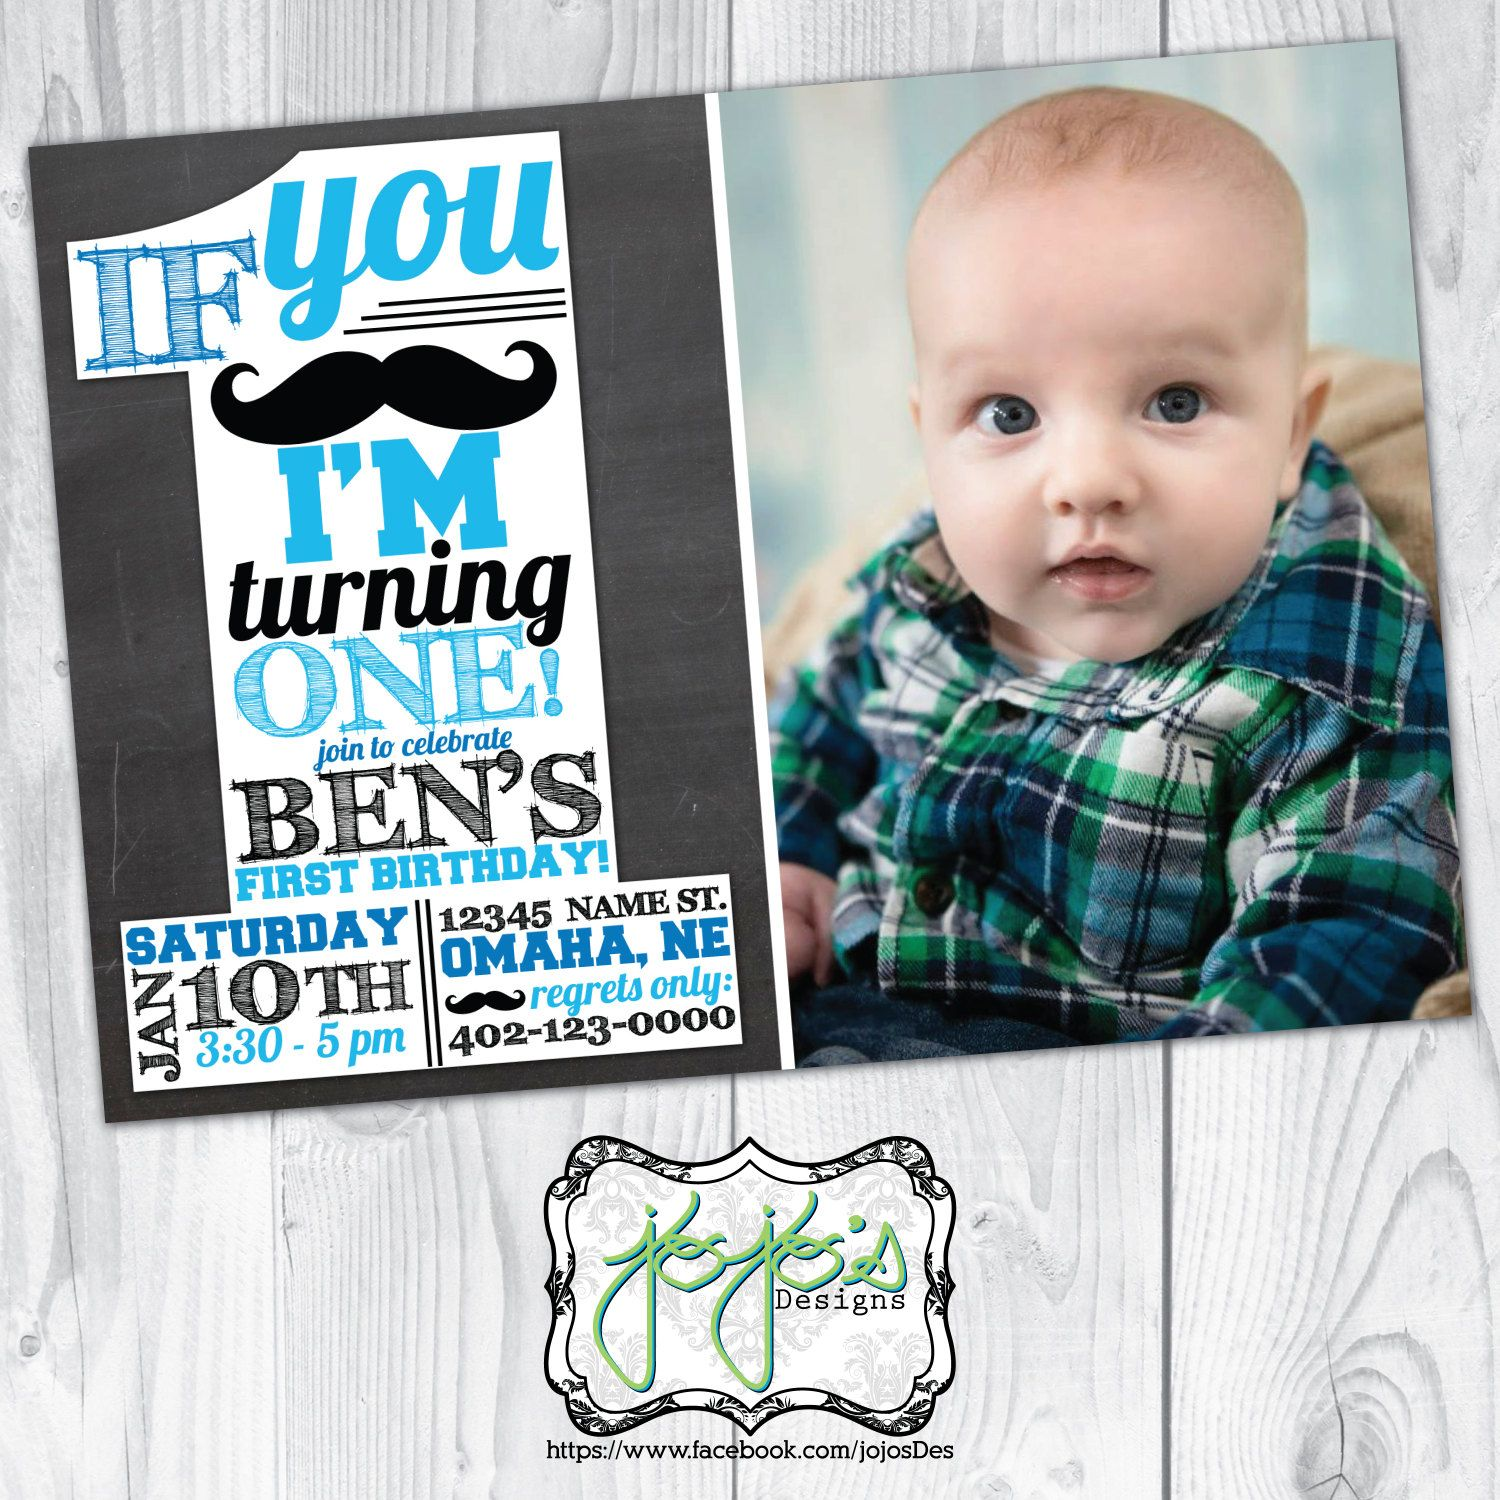 Mustache St Birthday Invitation Photo If You MustacheMust Ask - Digital first birthday invitation